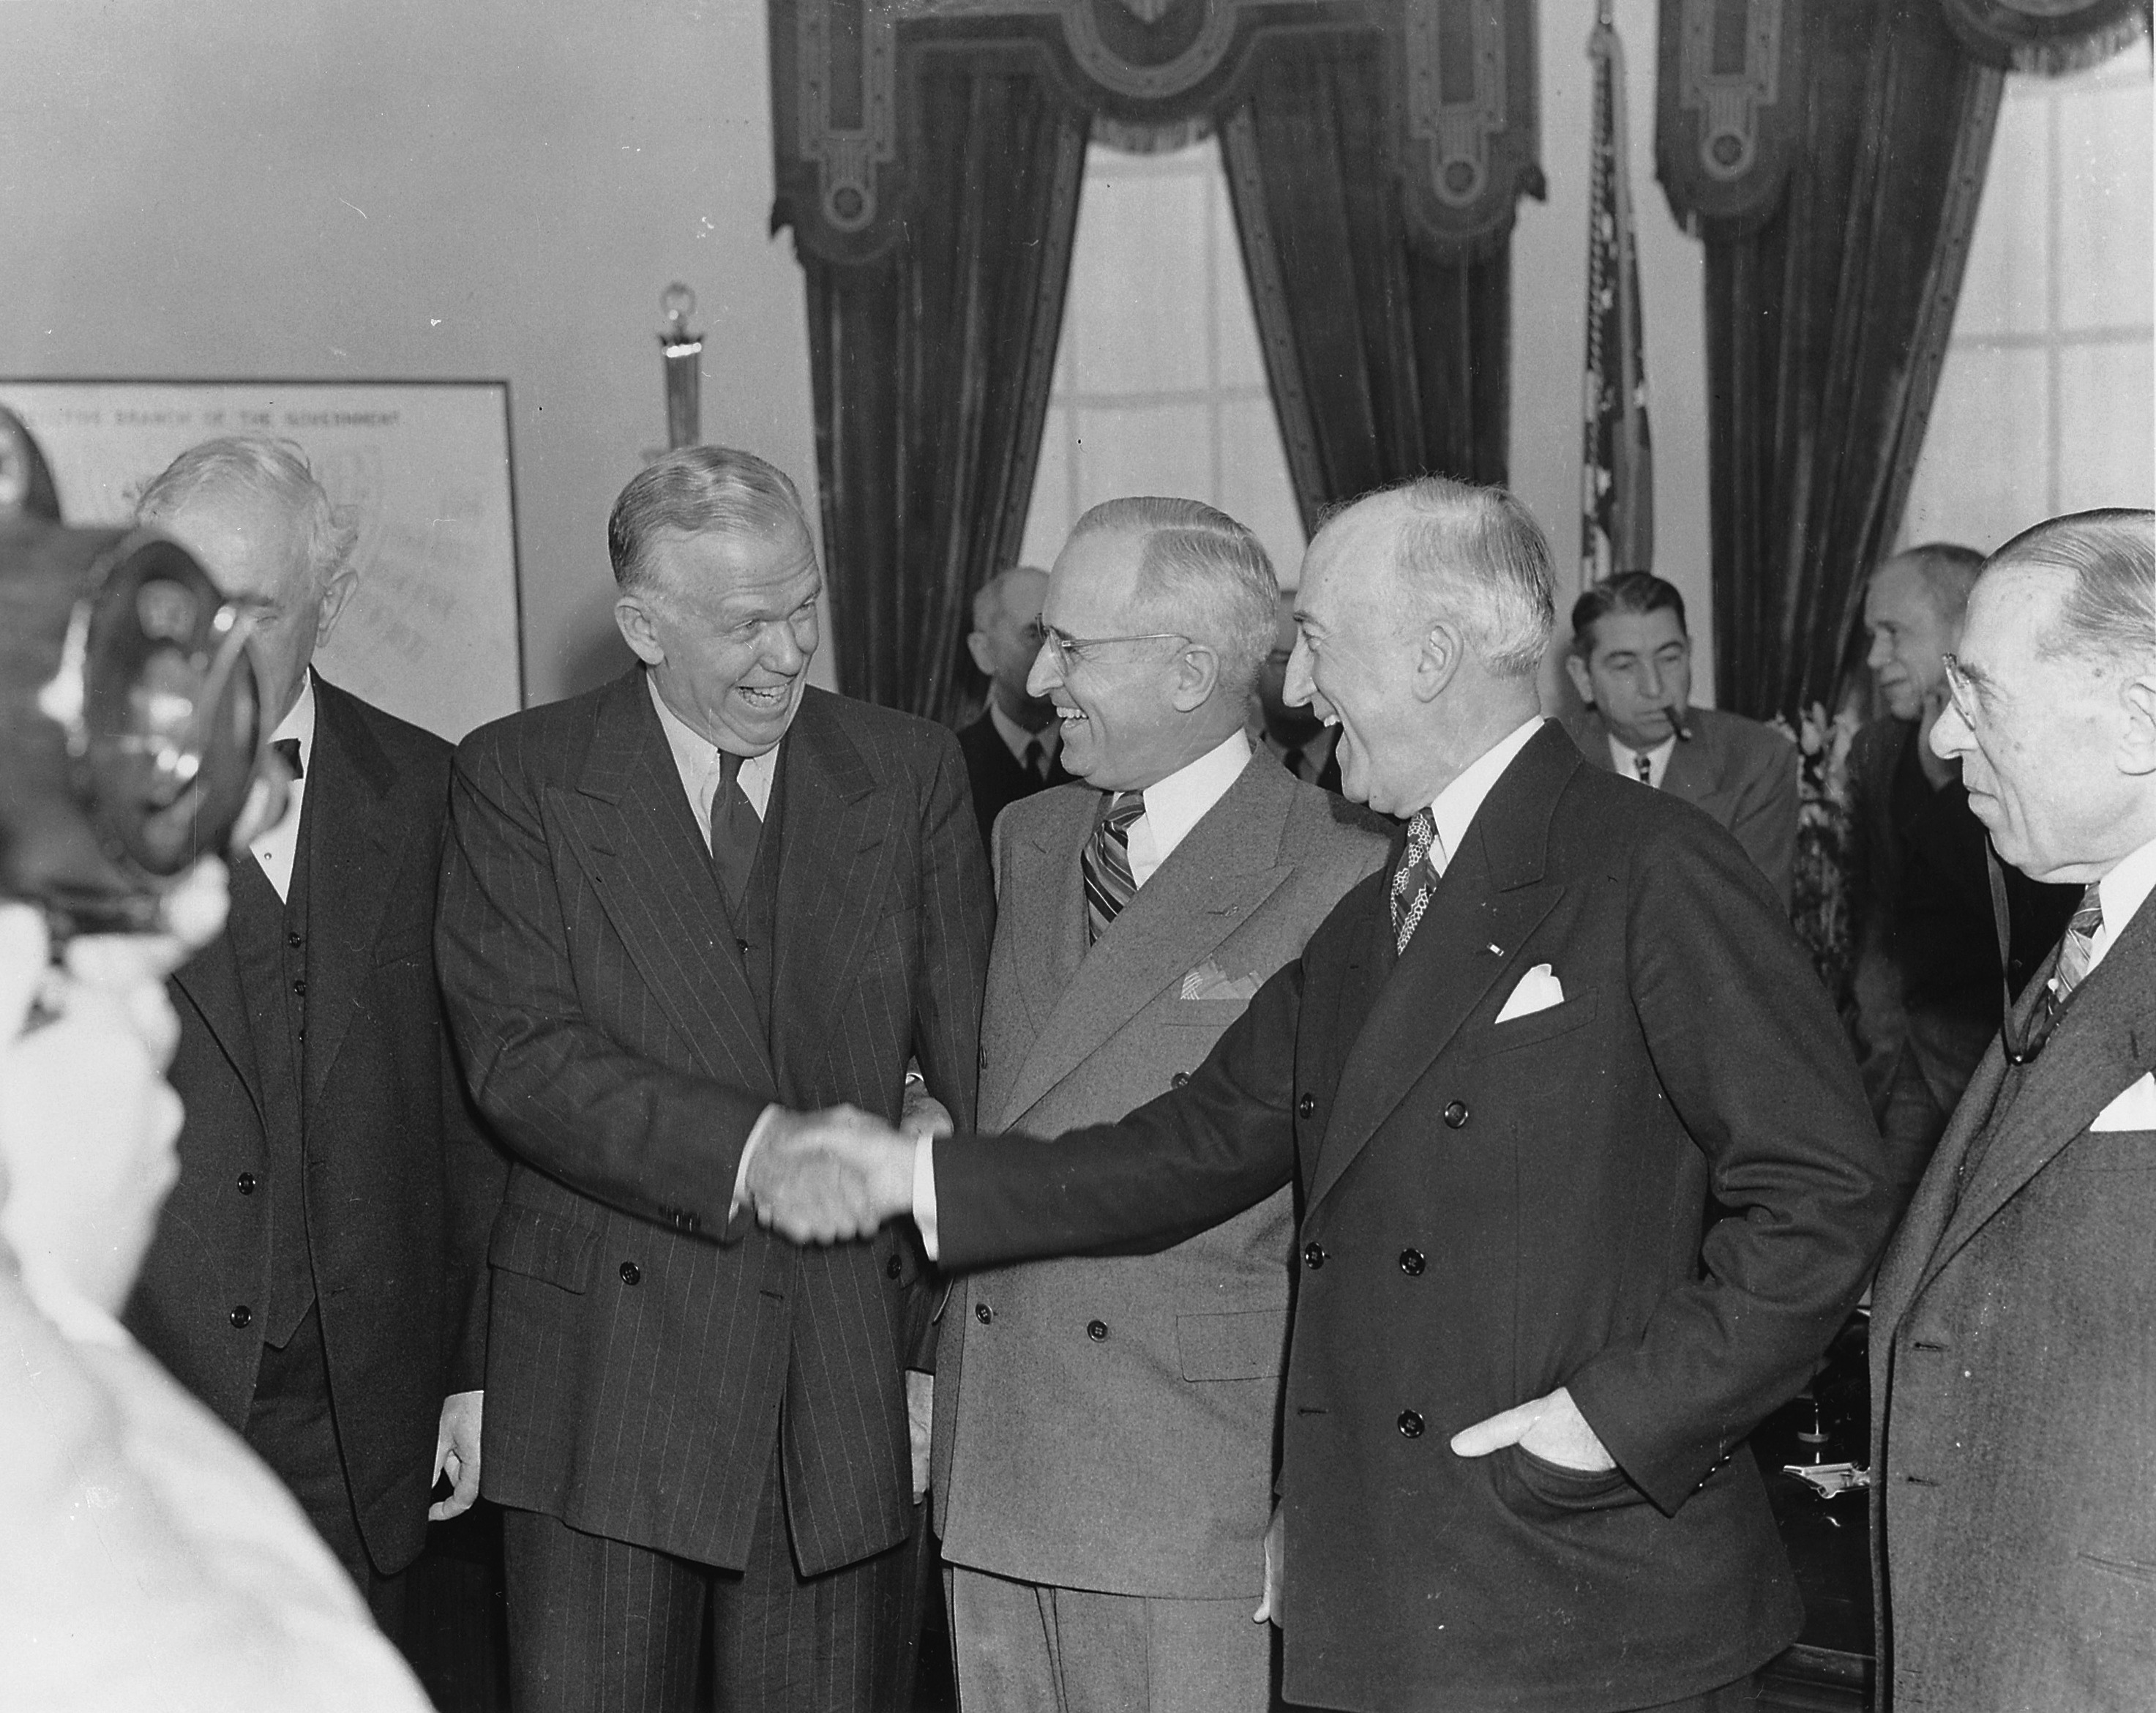 File:Photograph of George C. Marshall shaking hands with ... Predecessor